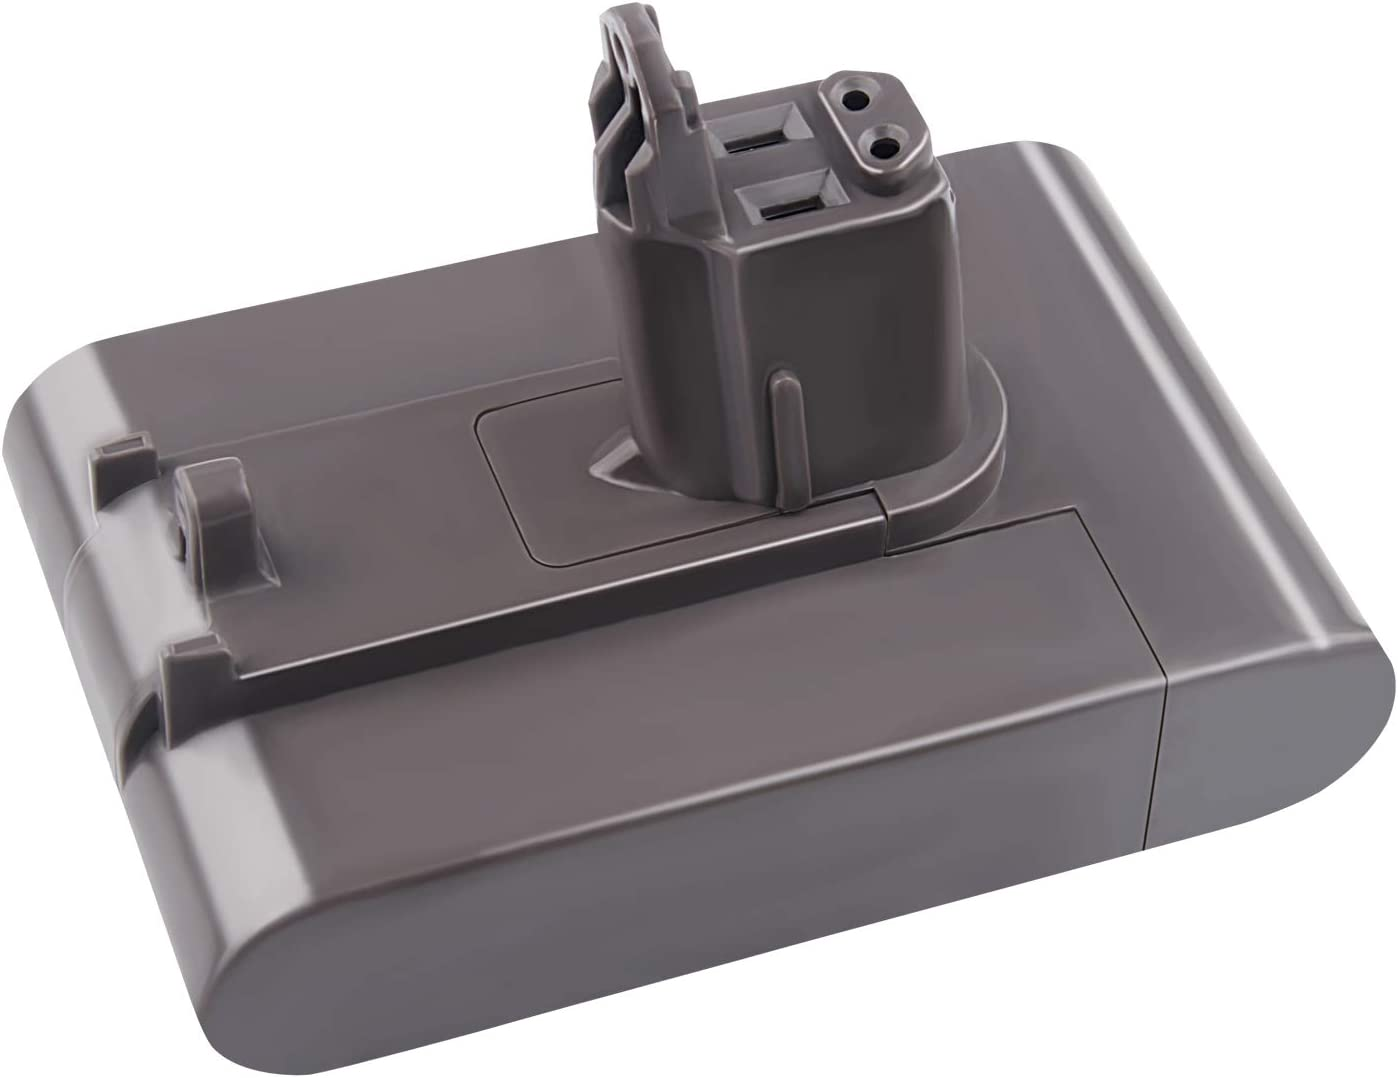 Replacement Battery for Dyson Cordless DC44 Animal DC31 DC34 DC35 DC45 Vacuum Clearner Only Fit for Dyson Type B, Not fit Type A